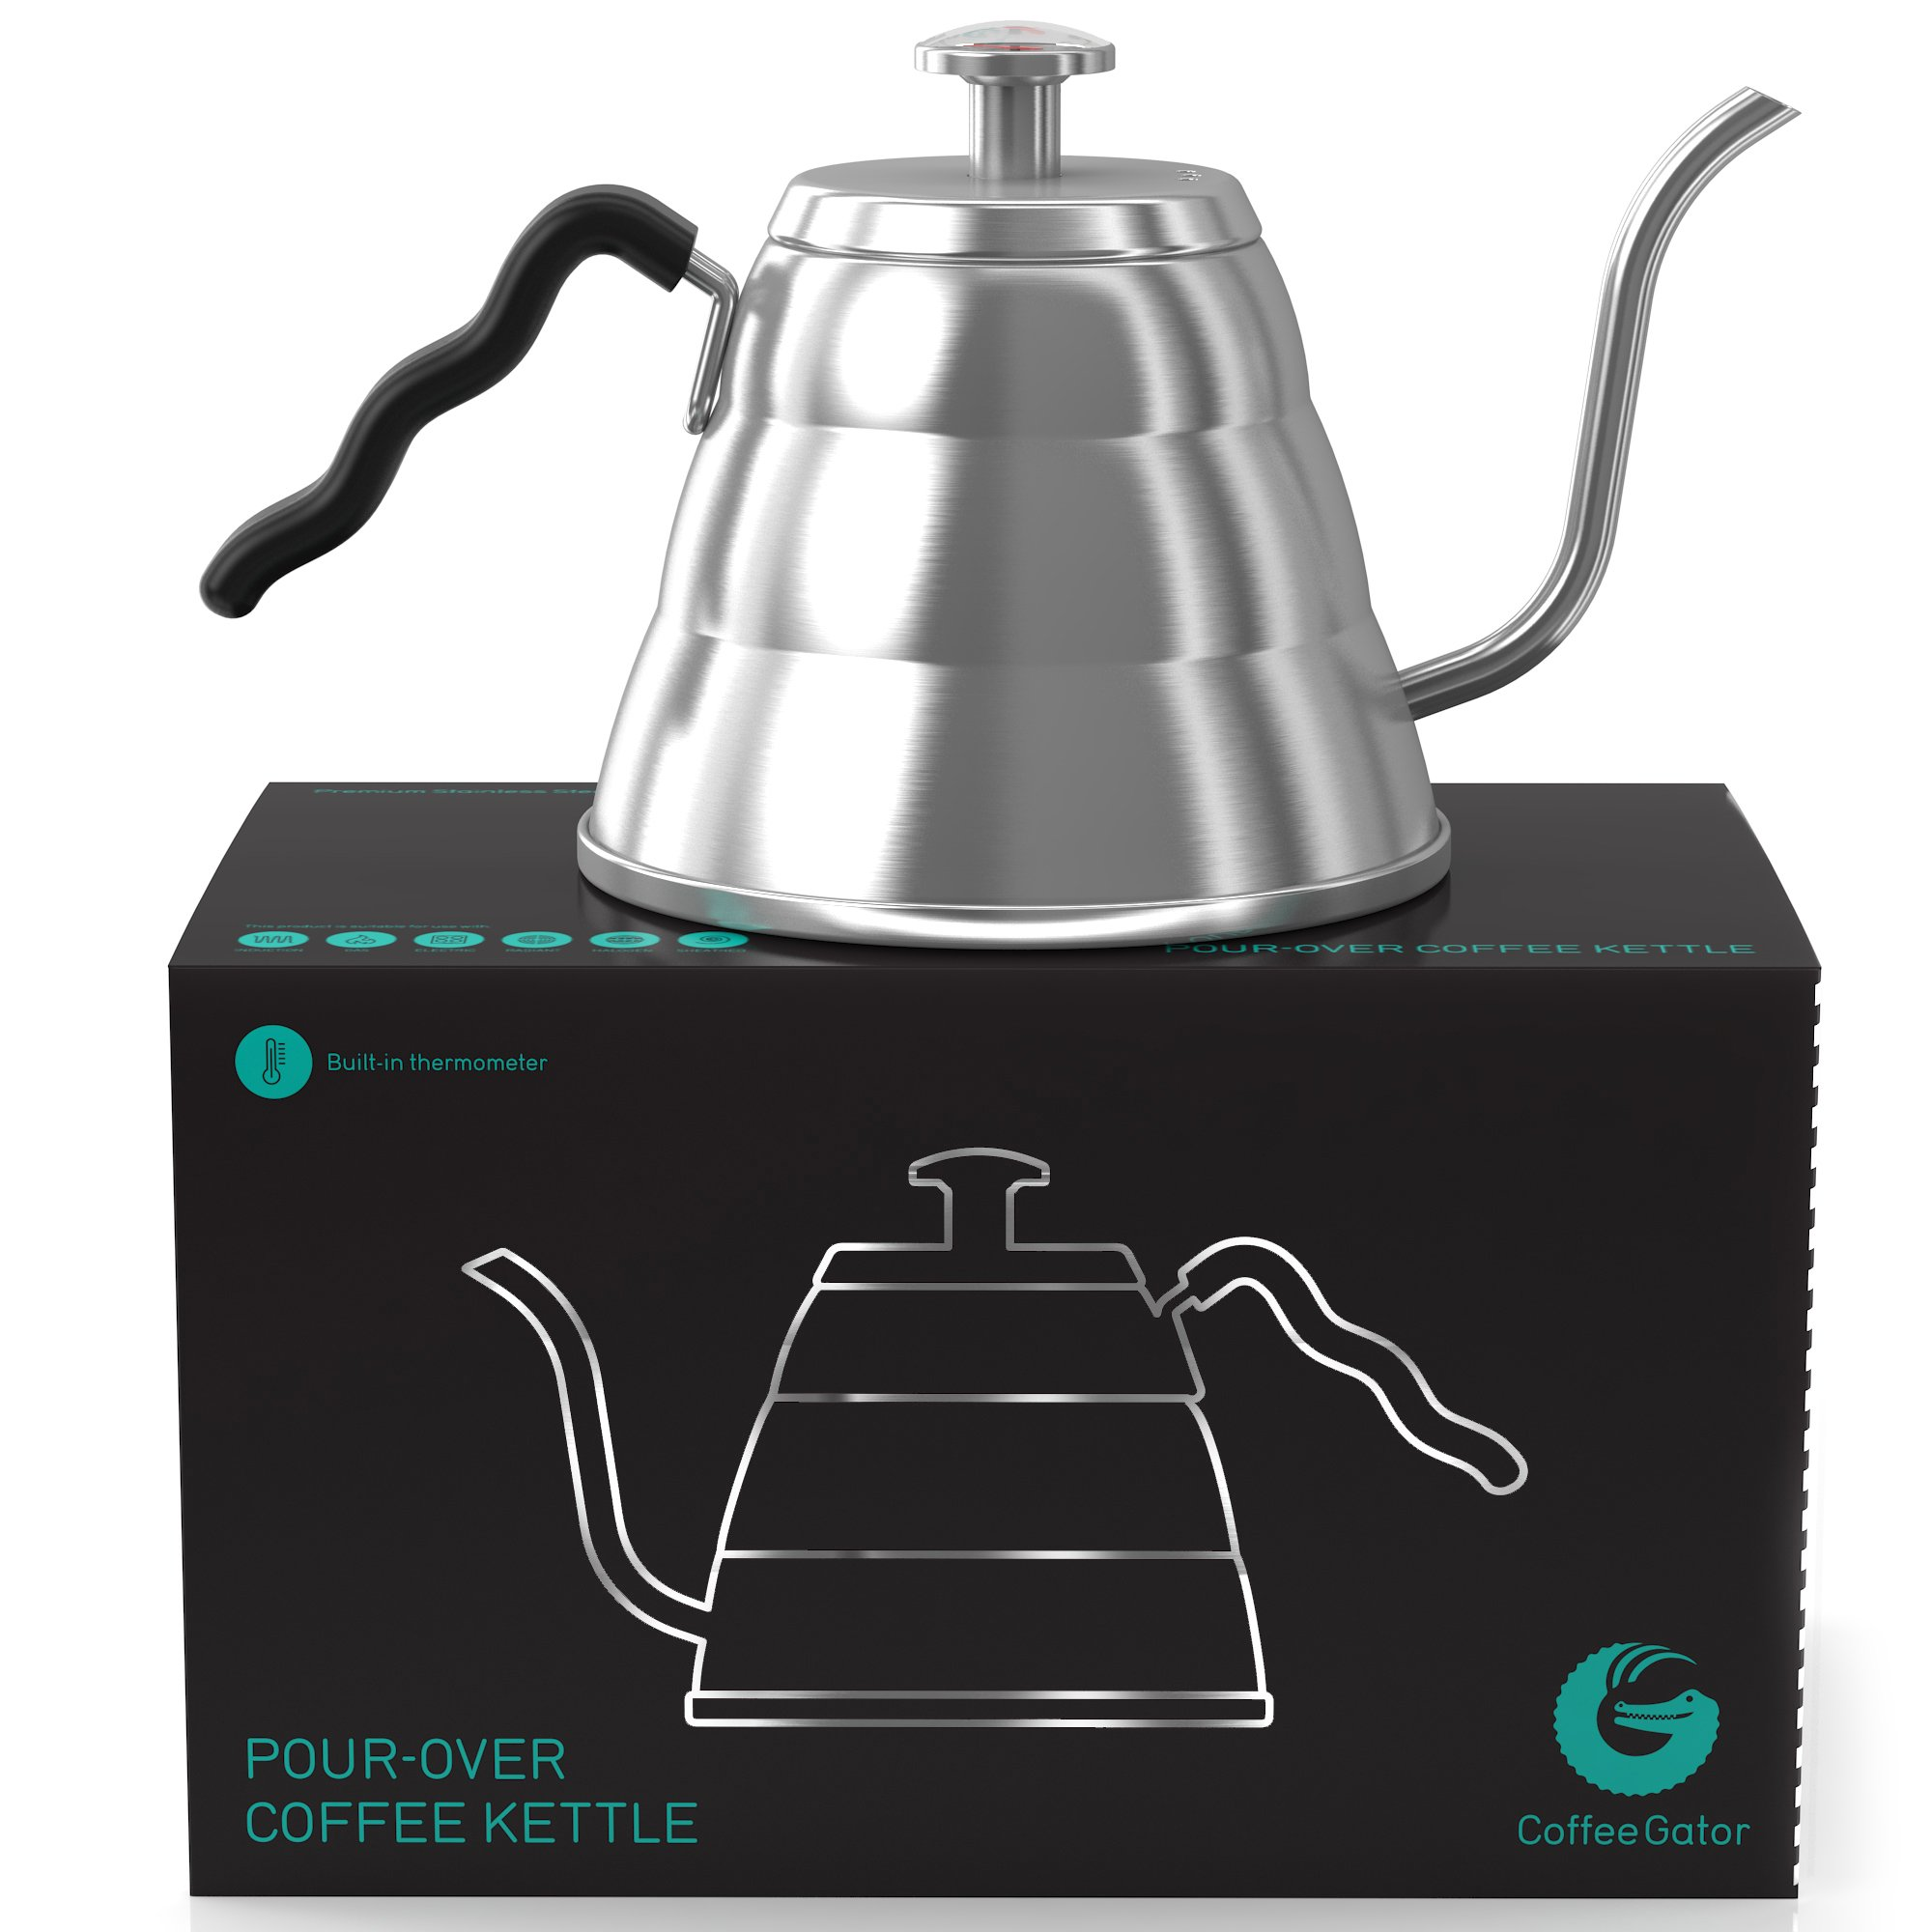 Coffee Gator Pour Over Kettle - Precision-Flow Gooseneck Spout and Thermometer - Brew Barista-Standard Hand Drip Coffee and Tea - Suitable for all Stovetops Including Induction - 34 Ounce by Coffee Gator